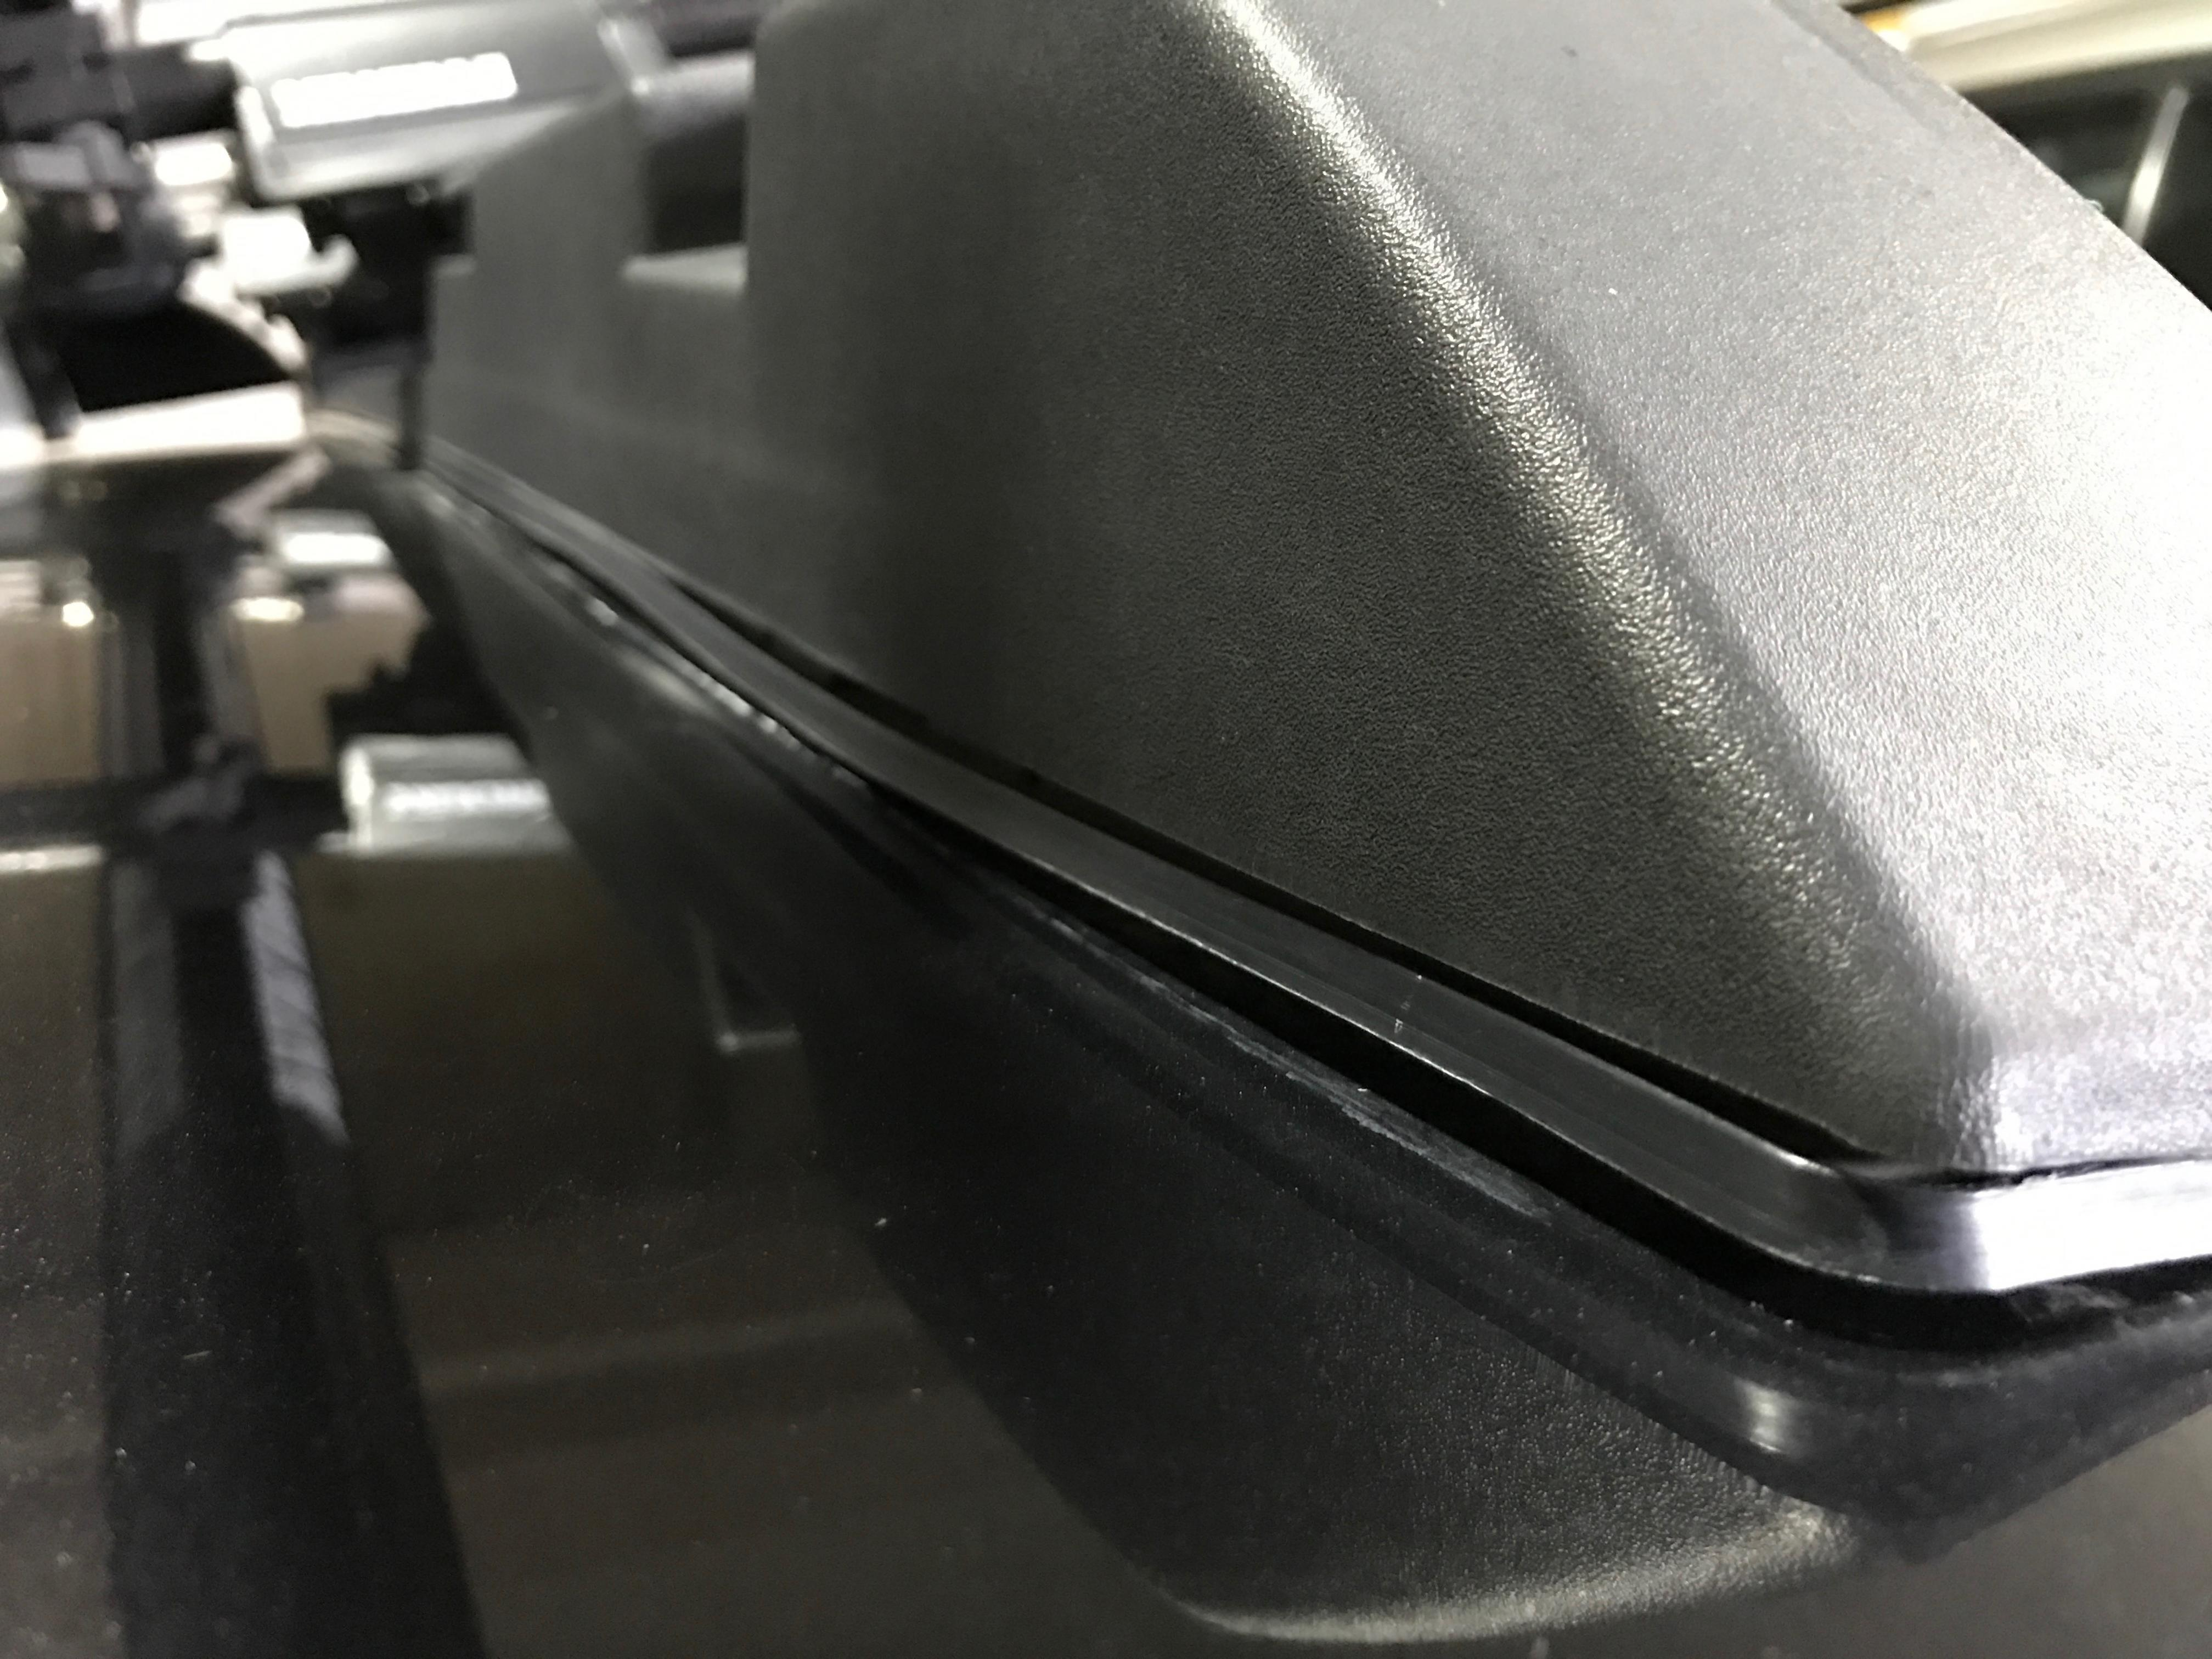 Subaru outback roof rack problem